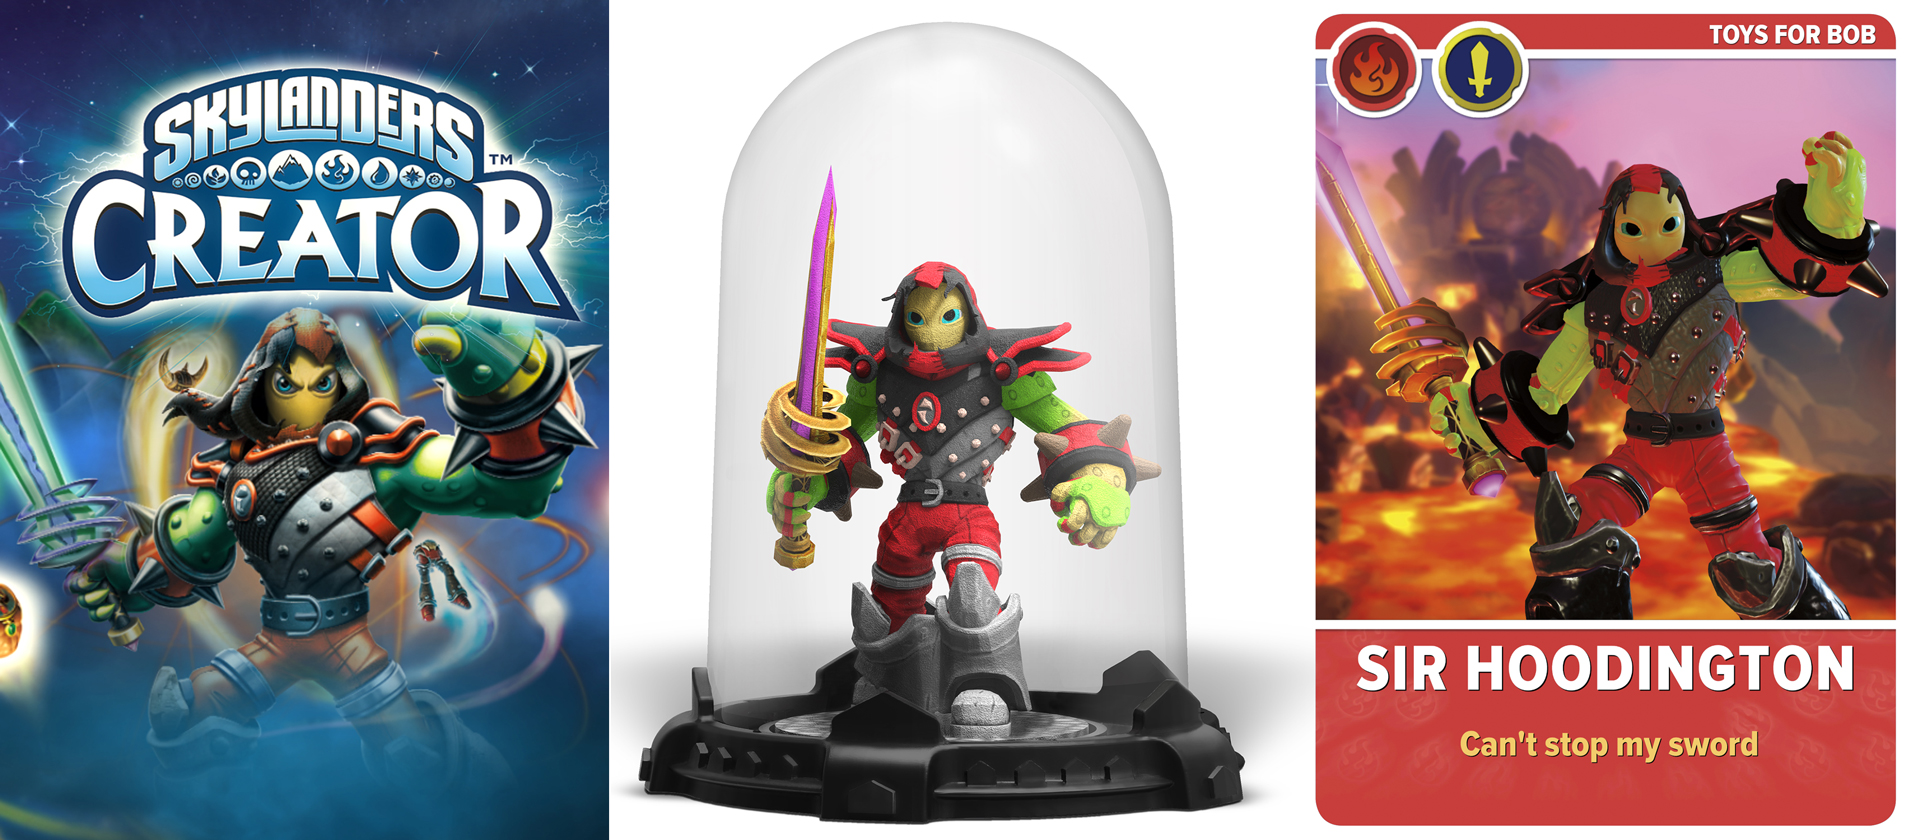 Skylanders Creator custom 3D Printed Imaginator Figure, Card, app, Imaginators,